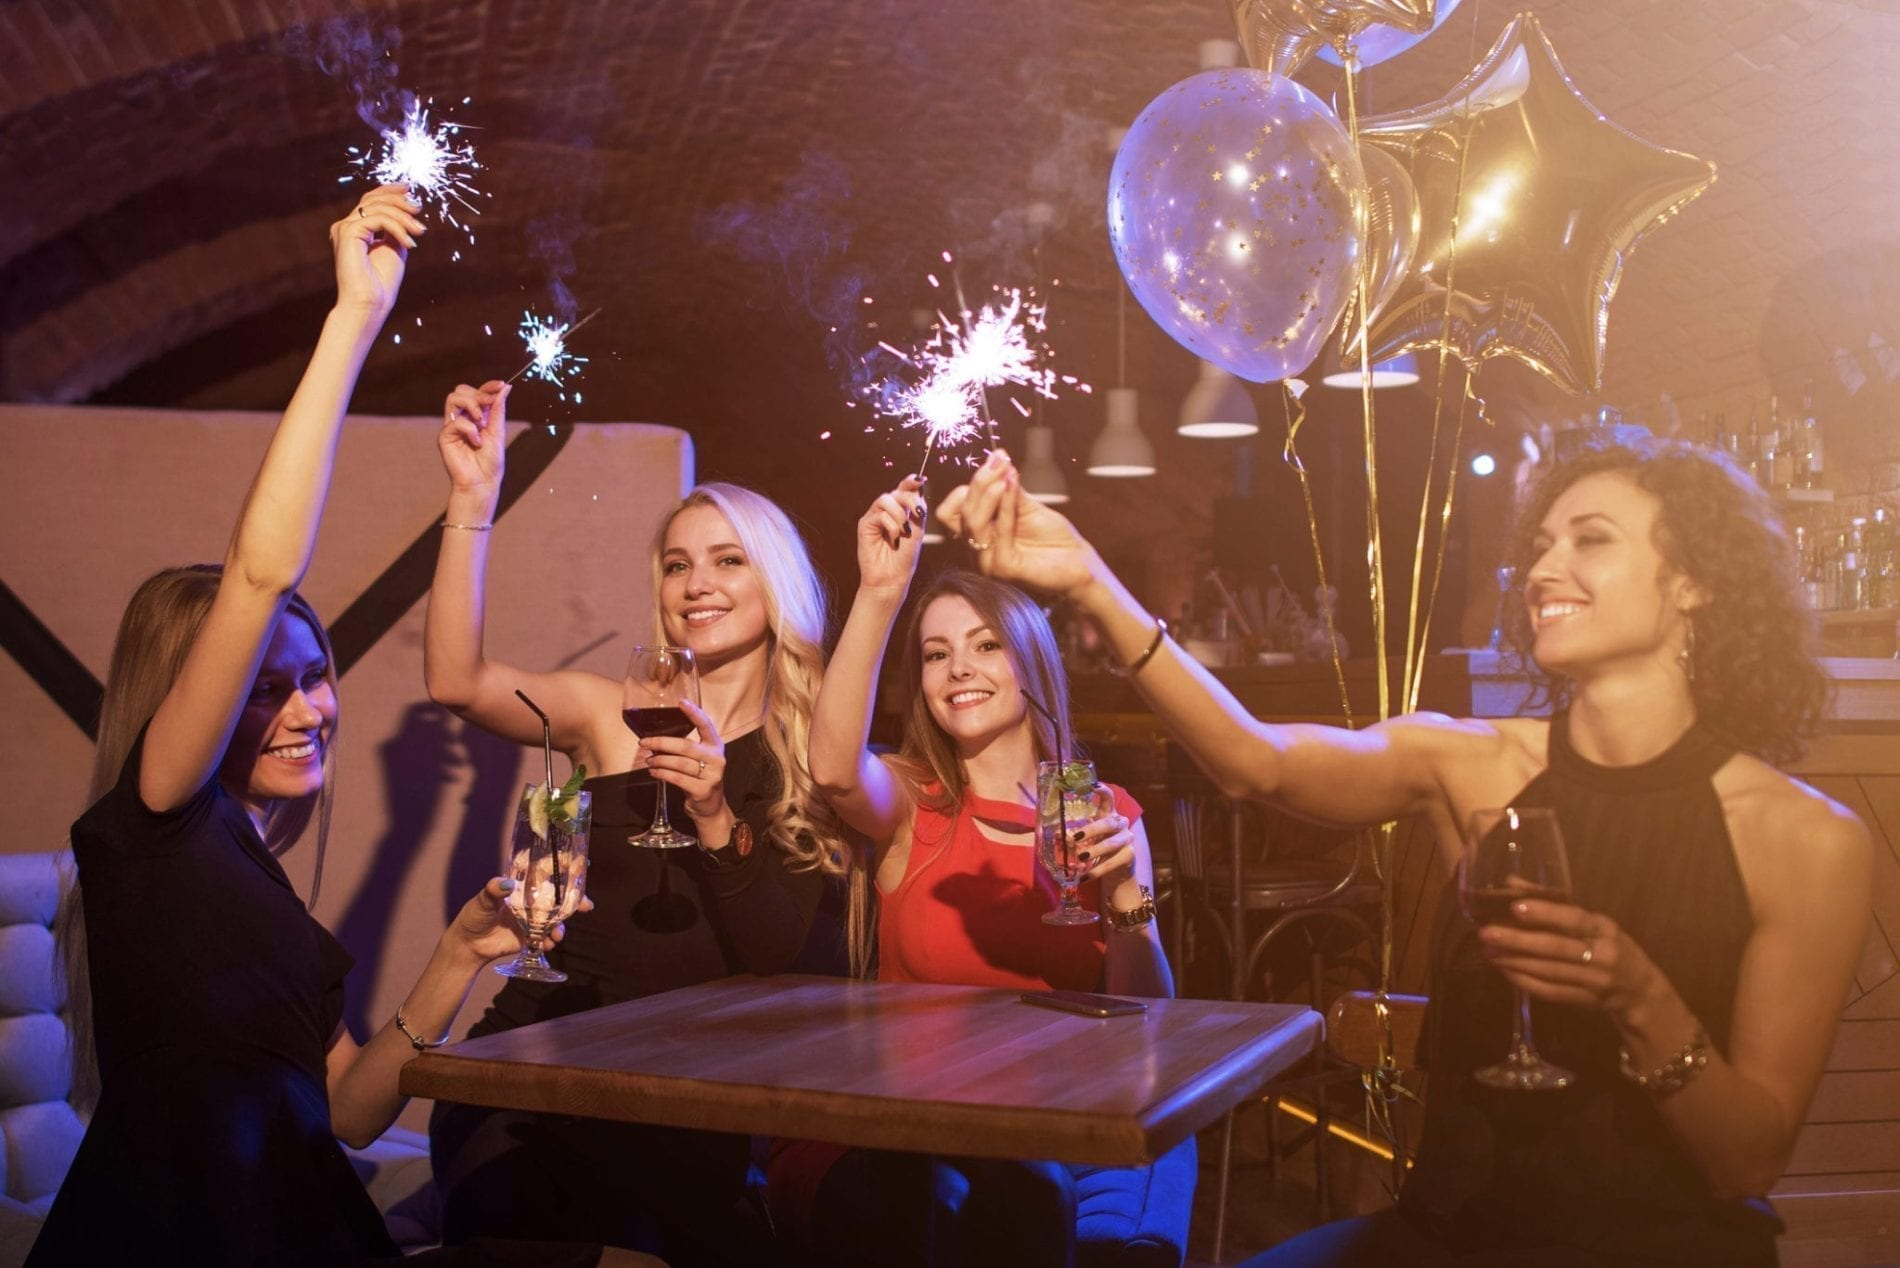 Girls partying at a spark with sparklers